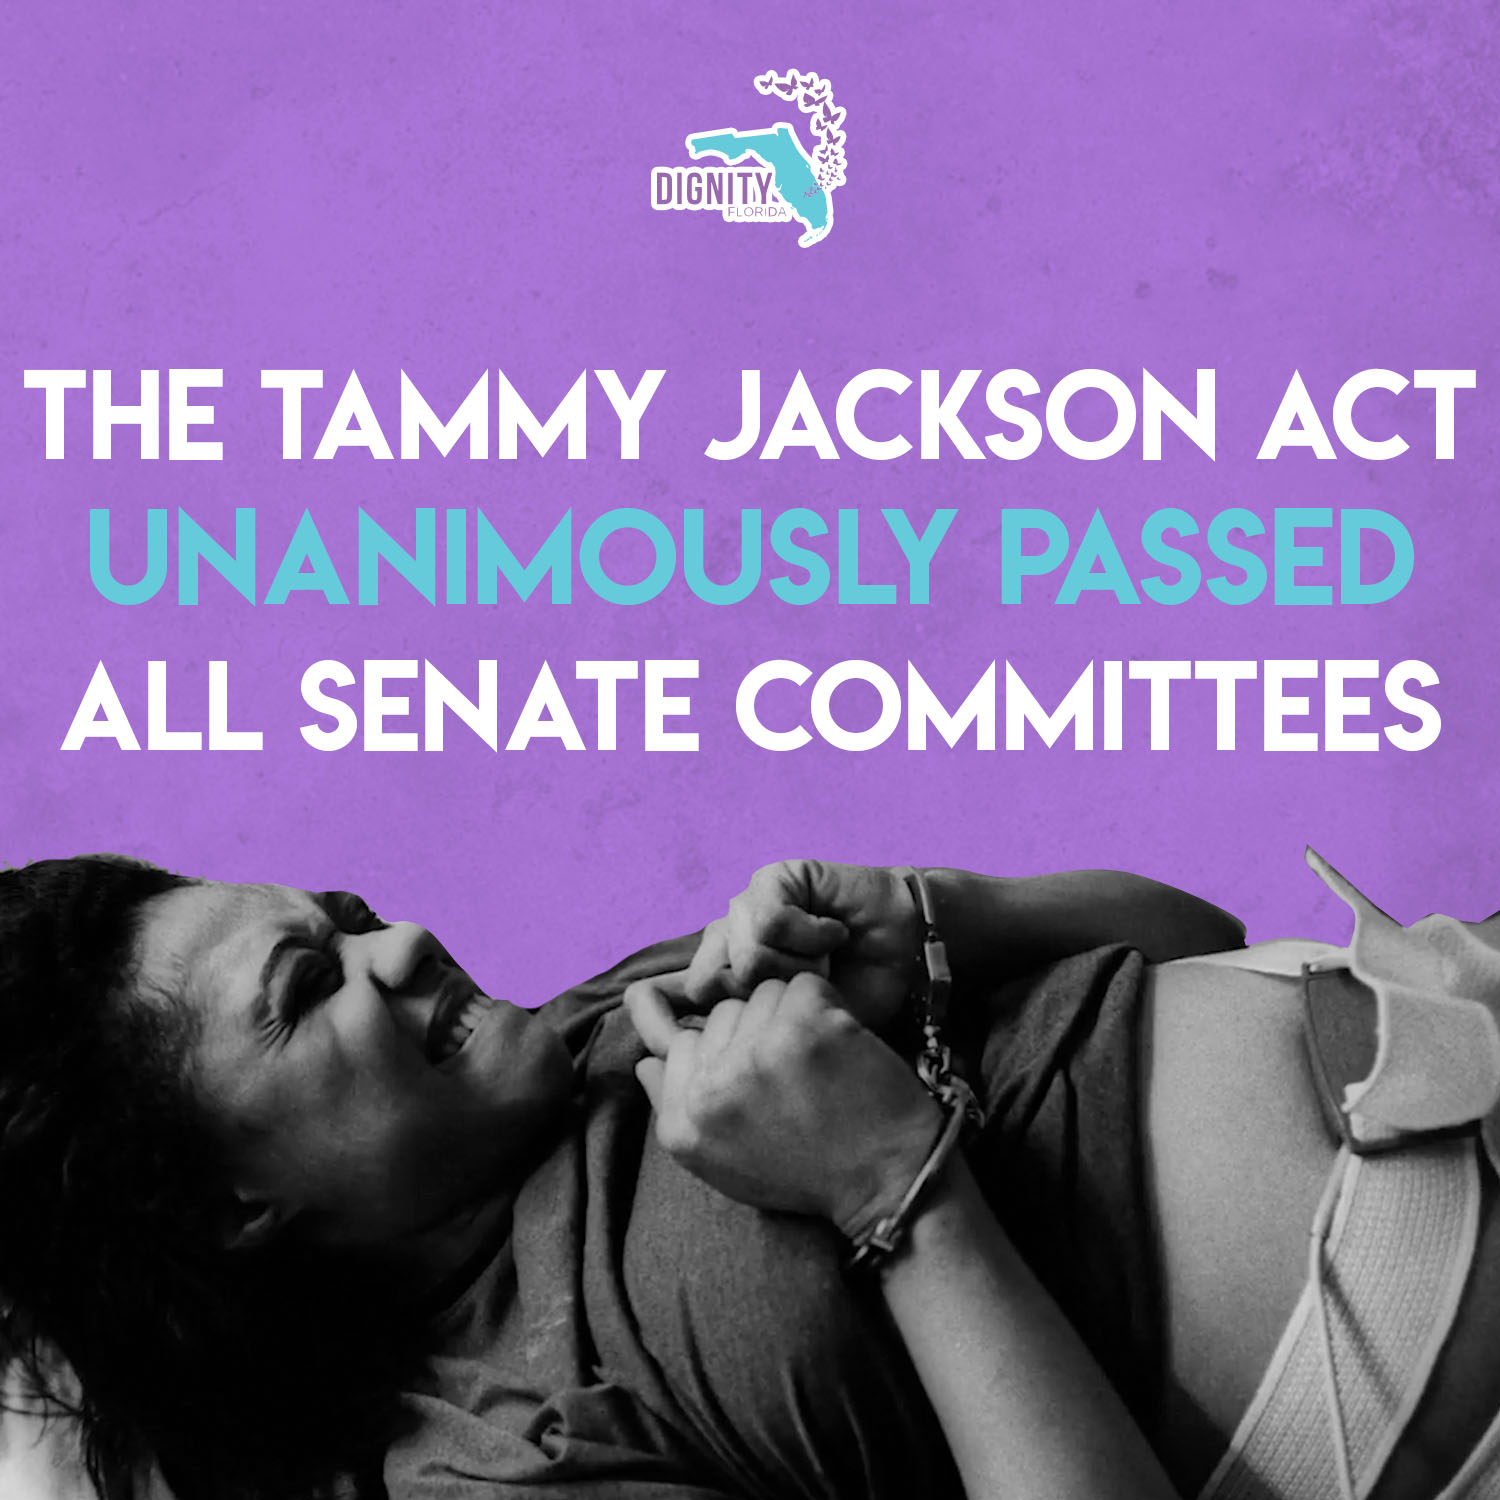 BREAKING: 'Tammy Jackson Act' Unanimously Passes its Final Senate Committee